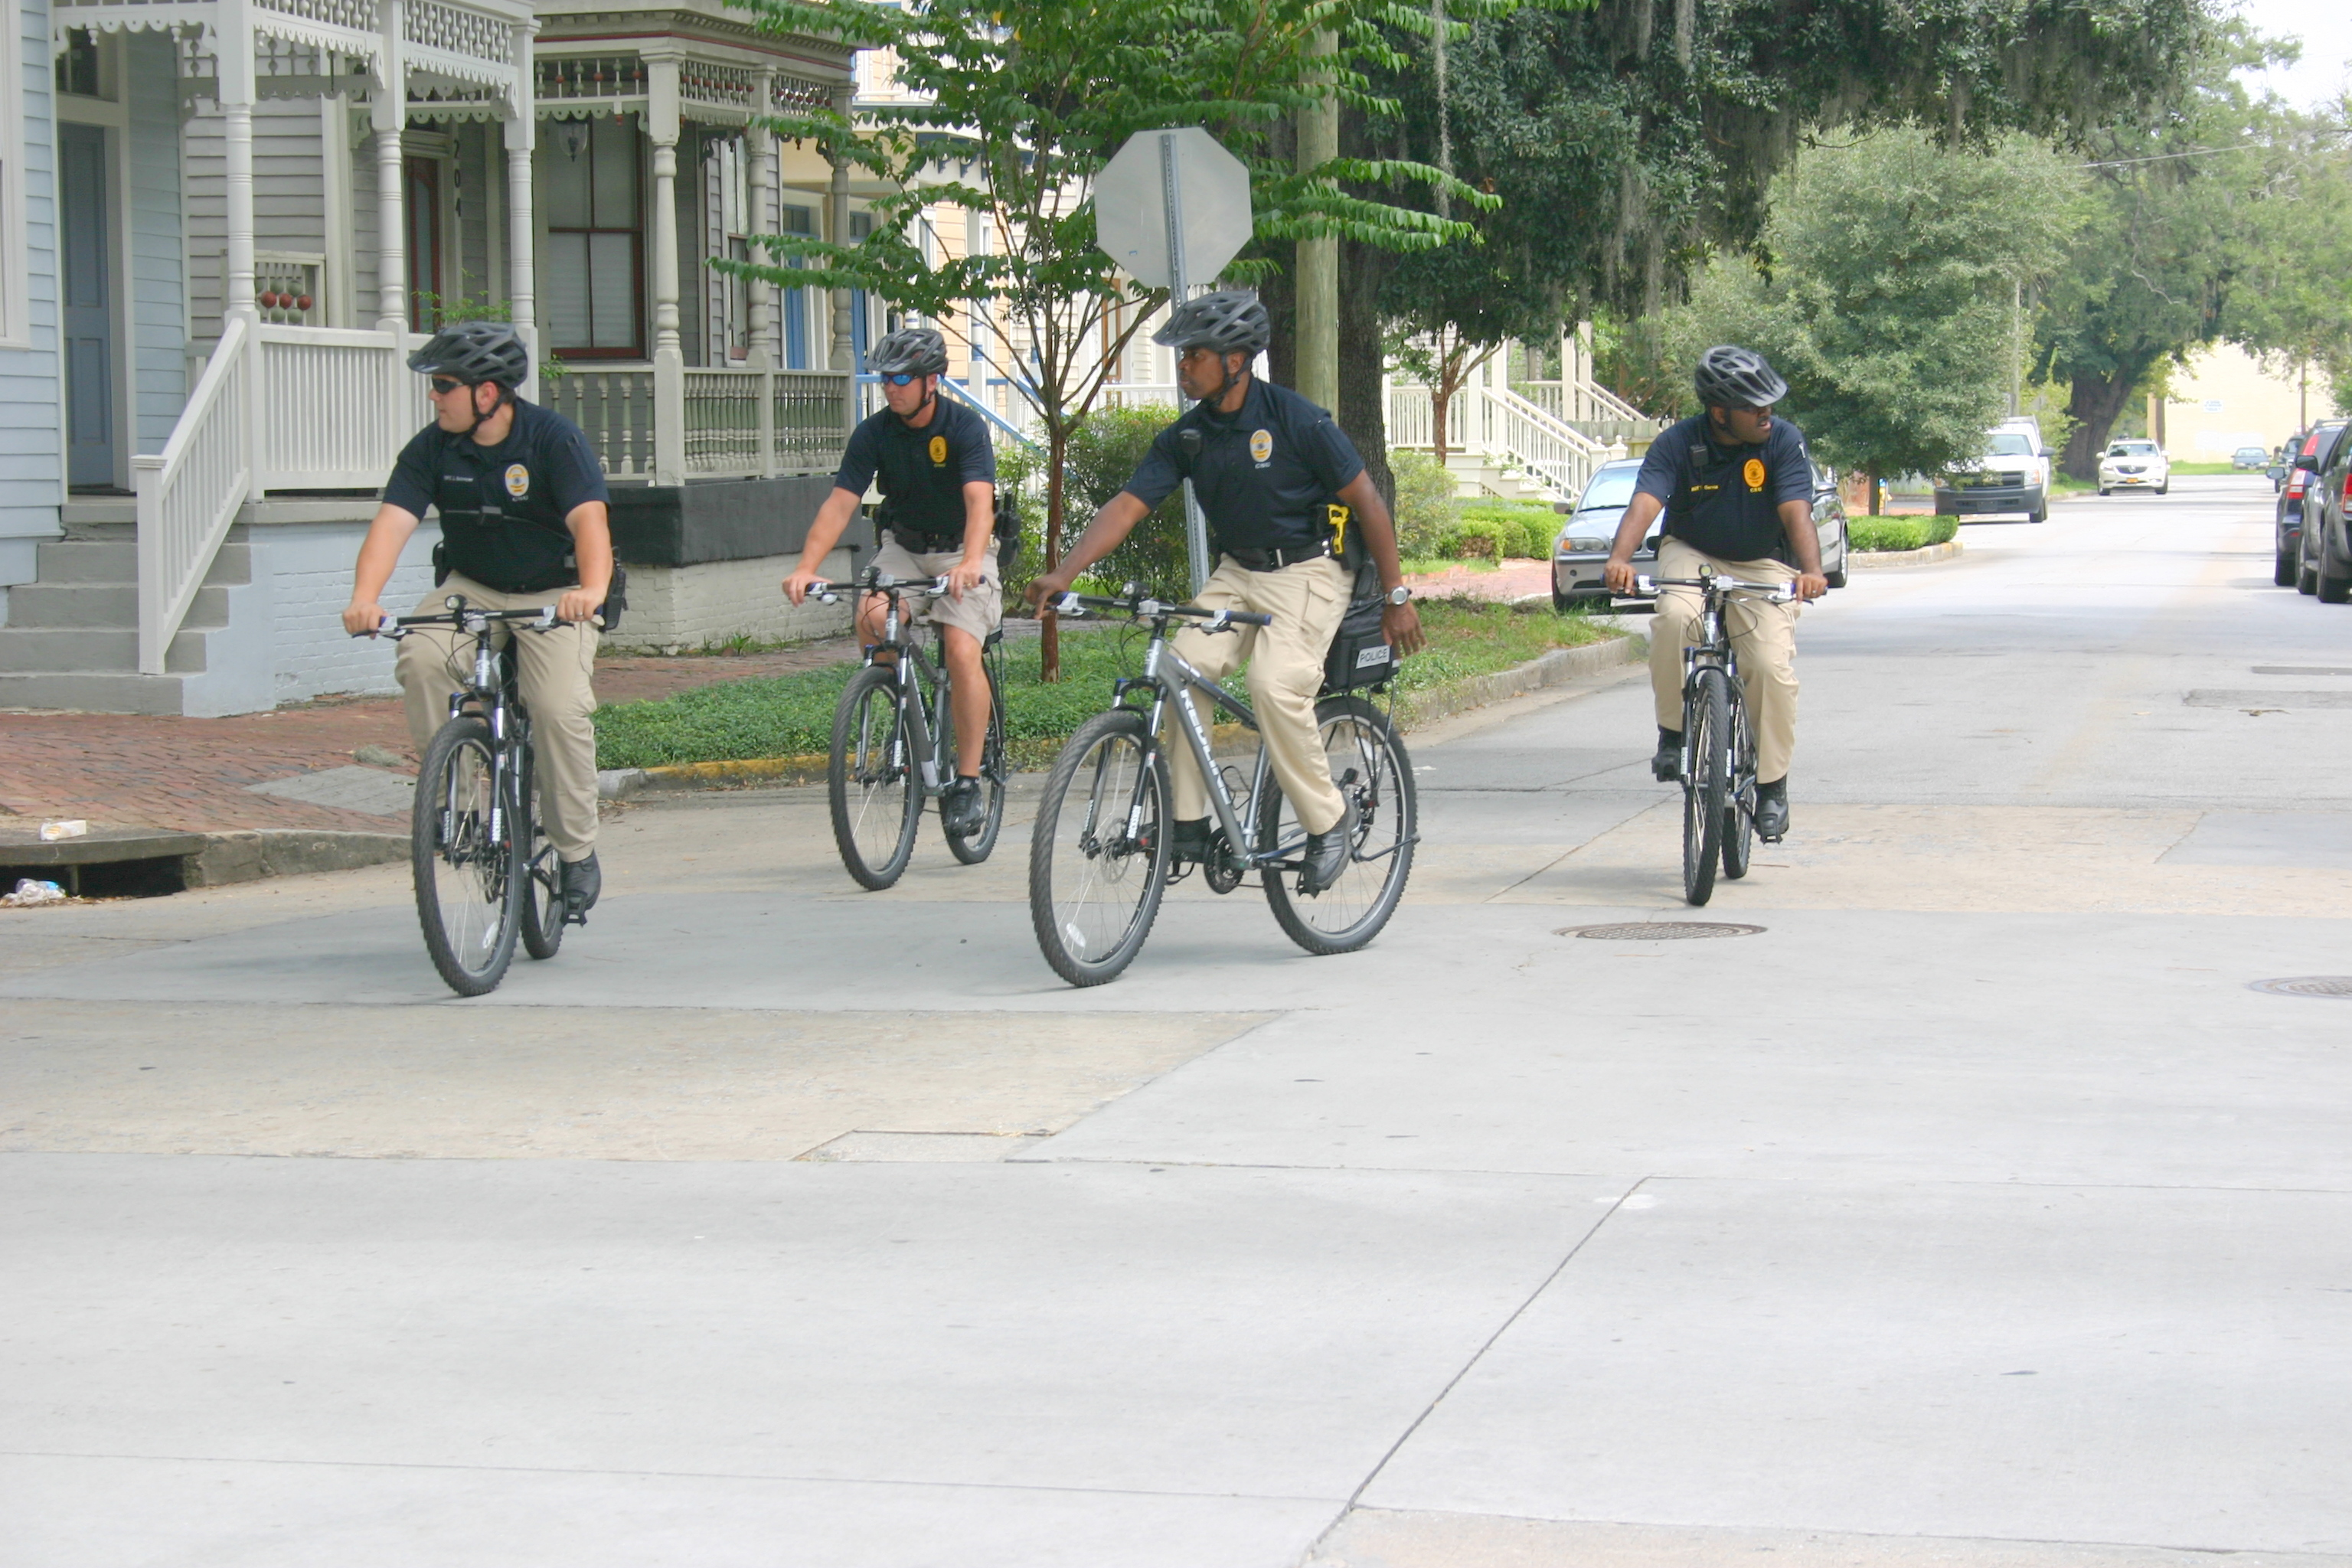 Pct. 3 CSU officers on bicycle patrol.